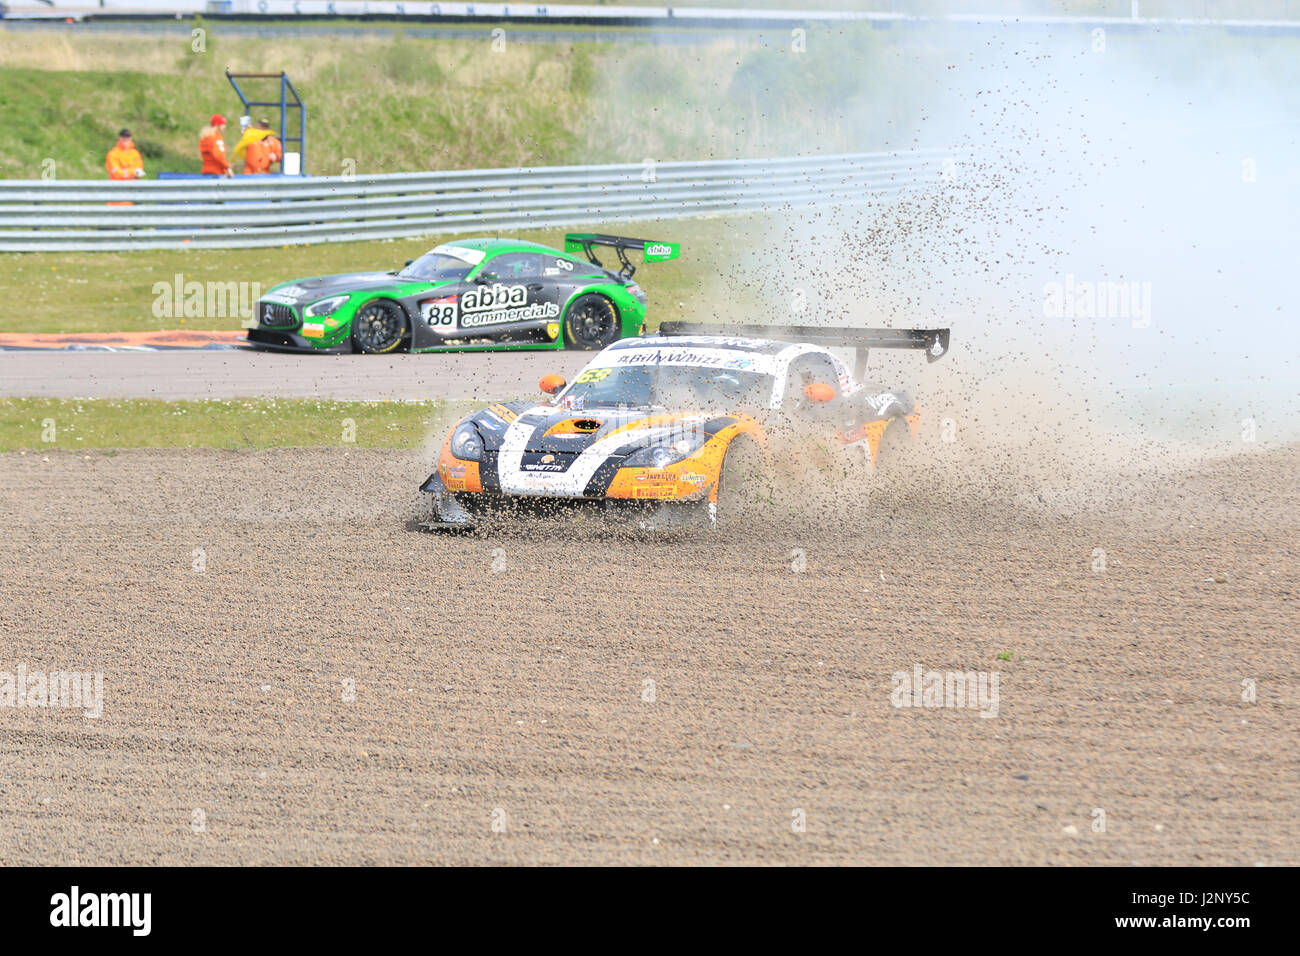 ... Gottsacker and Nathan Freke) loses control and goes into the gravel before being recovered to rejoin the British GT race at Rockingham Motor Speedway ...